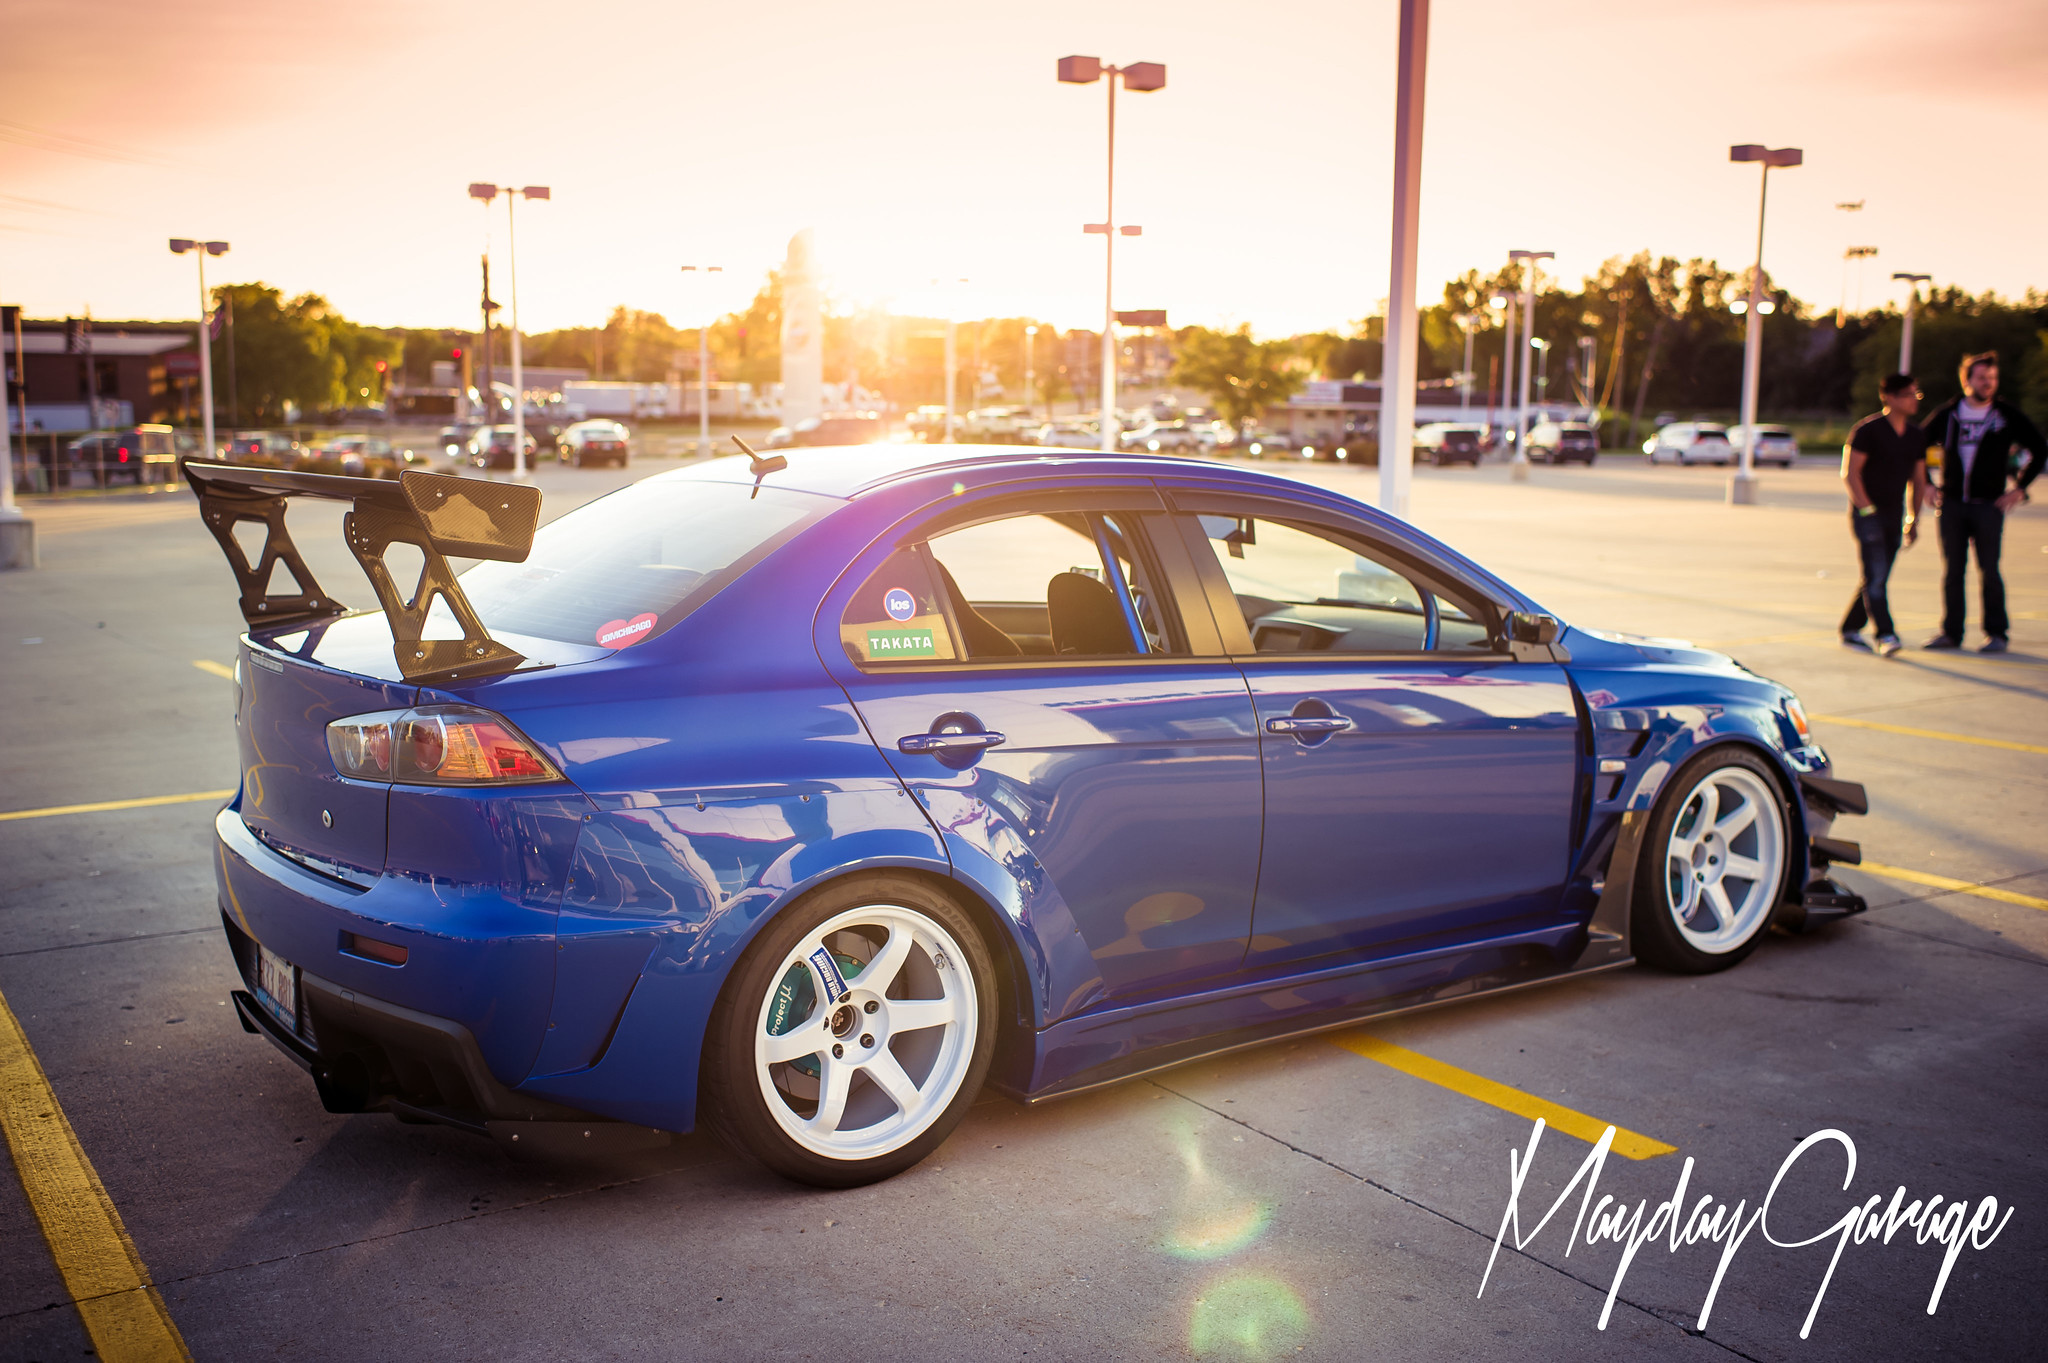 Michael Braeuner's Varis widebody, super duper JDM Evo X stunning the crowds at OK CHI